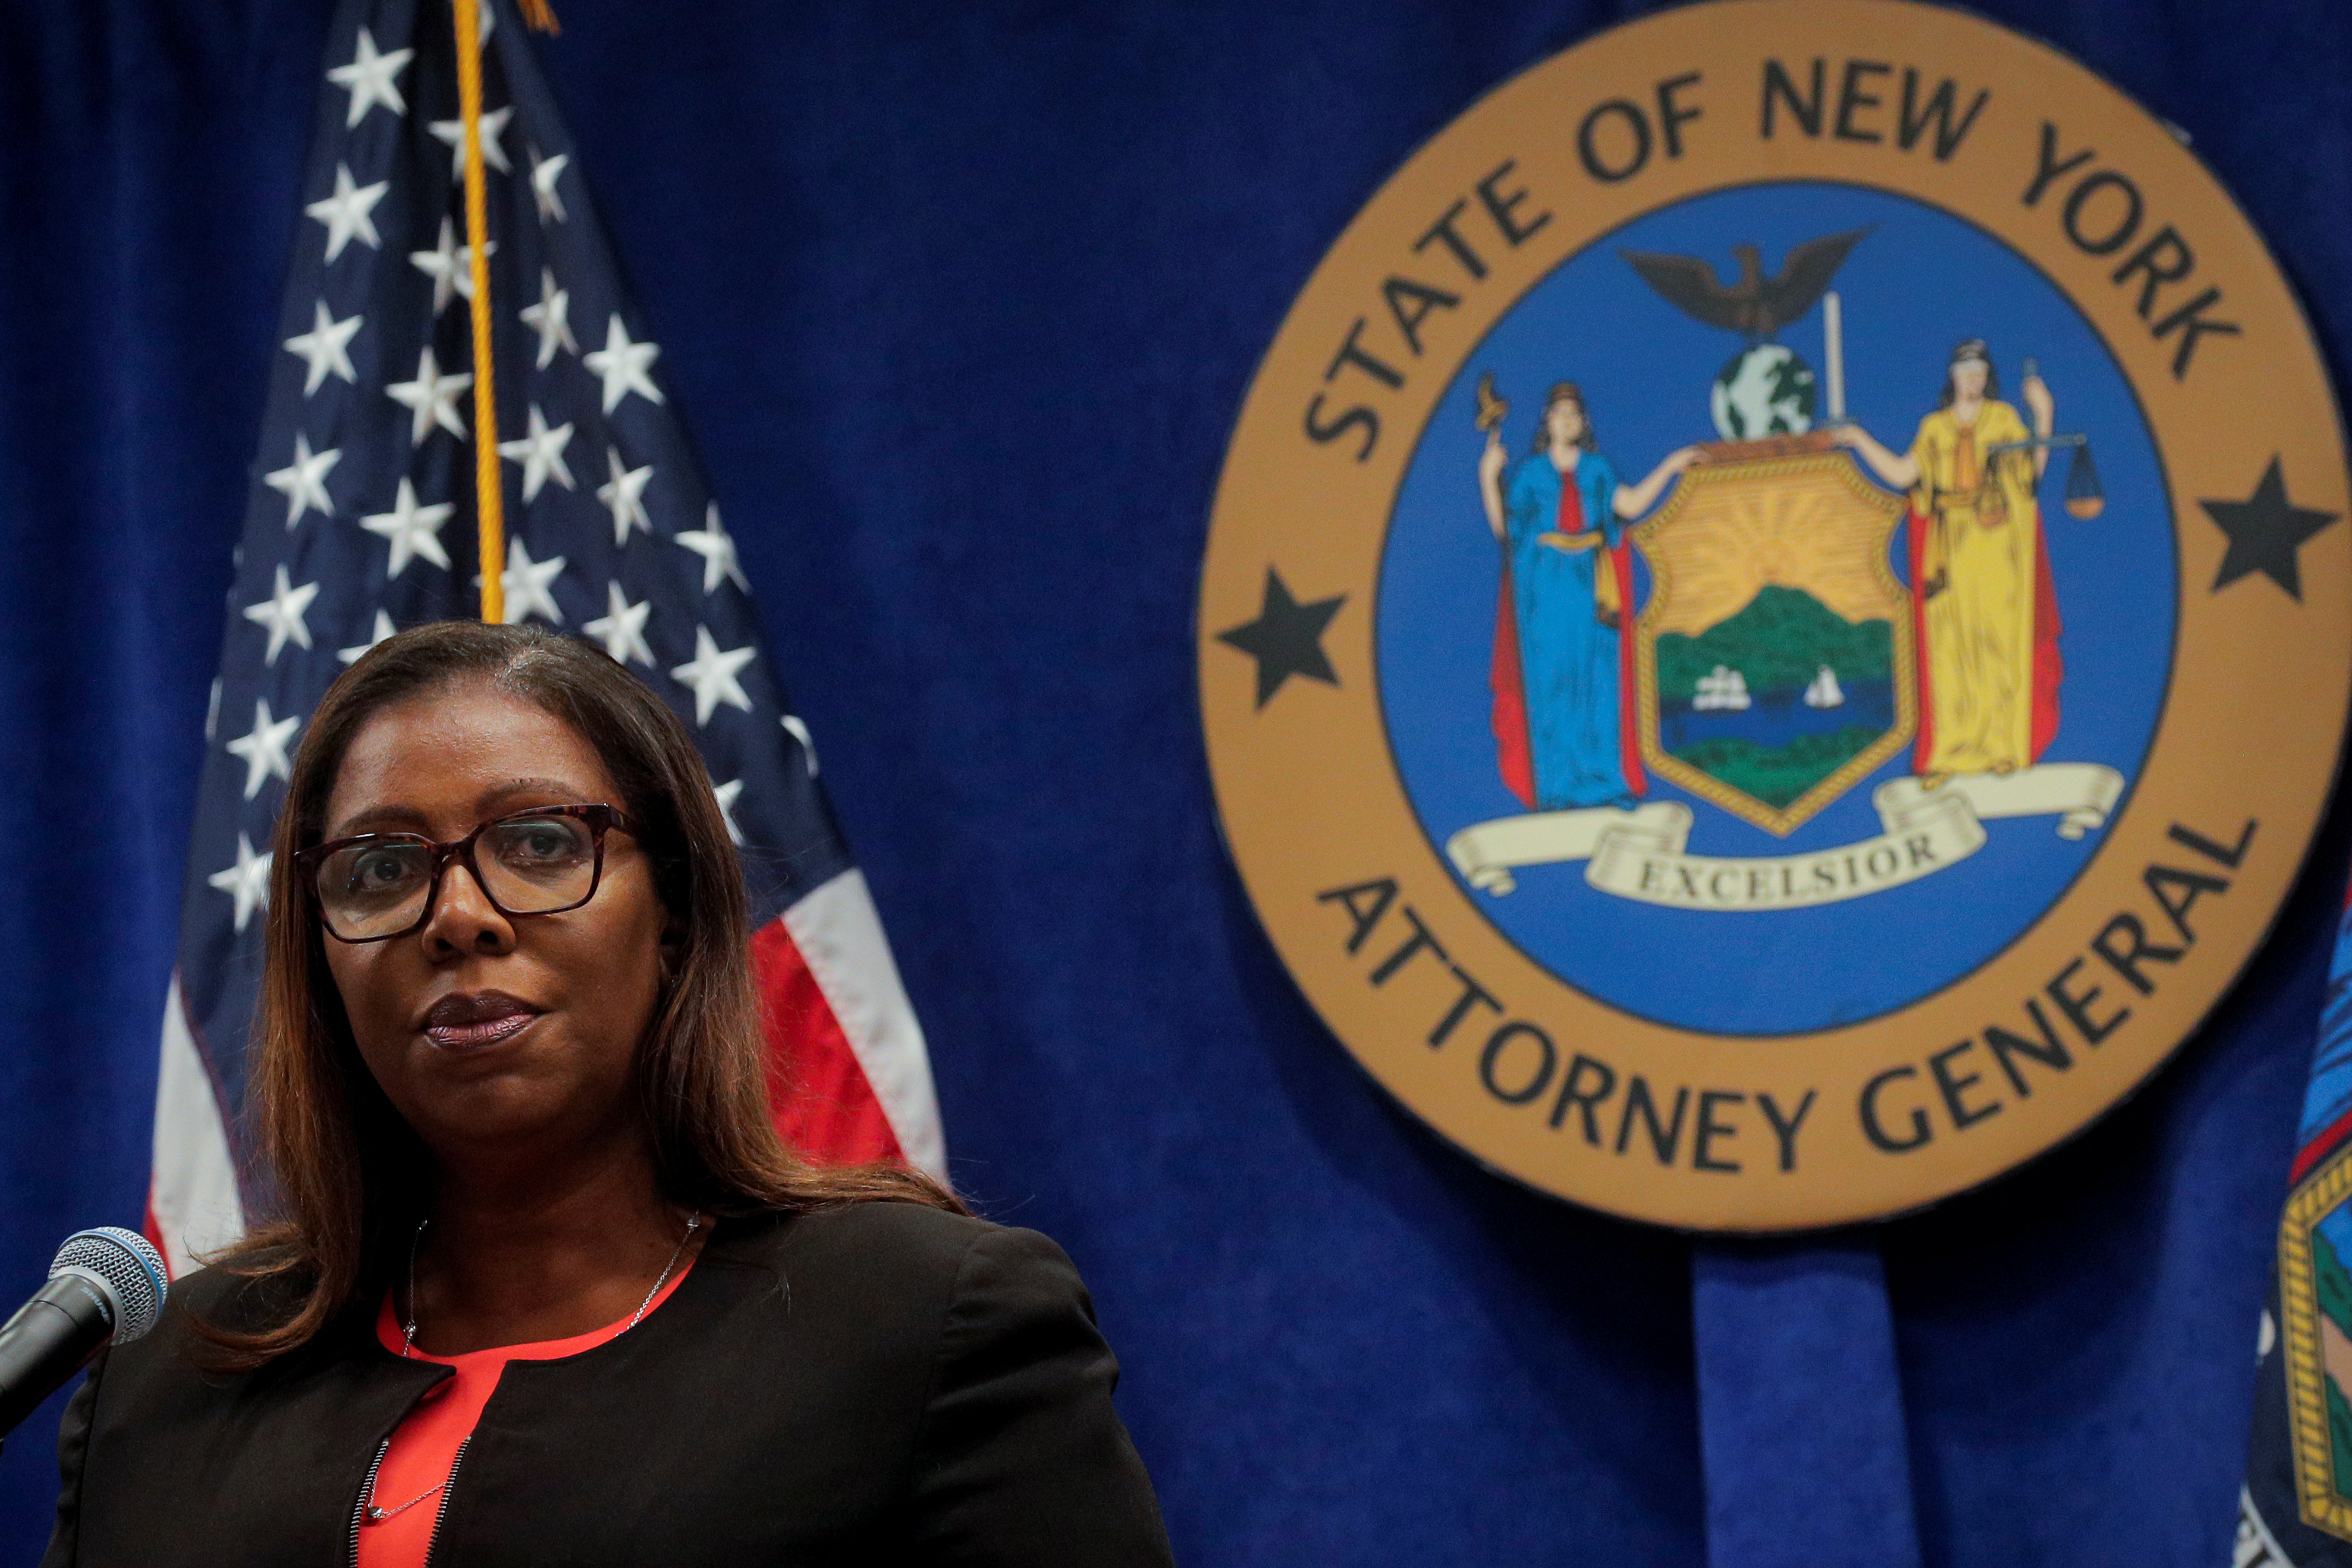 New York State Attorney General, Letitia James, speaks during a news conference, to announce a suit to dissolve the National Rifle Association, In New York, August 6, 2020. REUTERS/Brendan McDermid